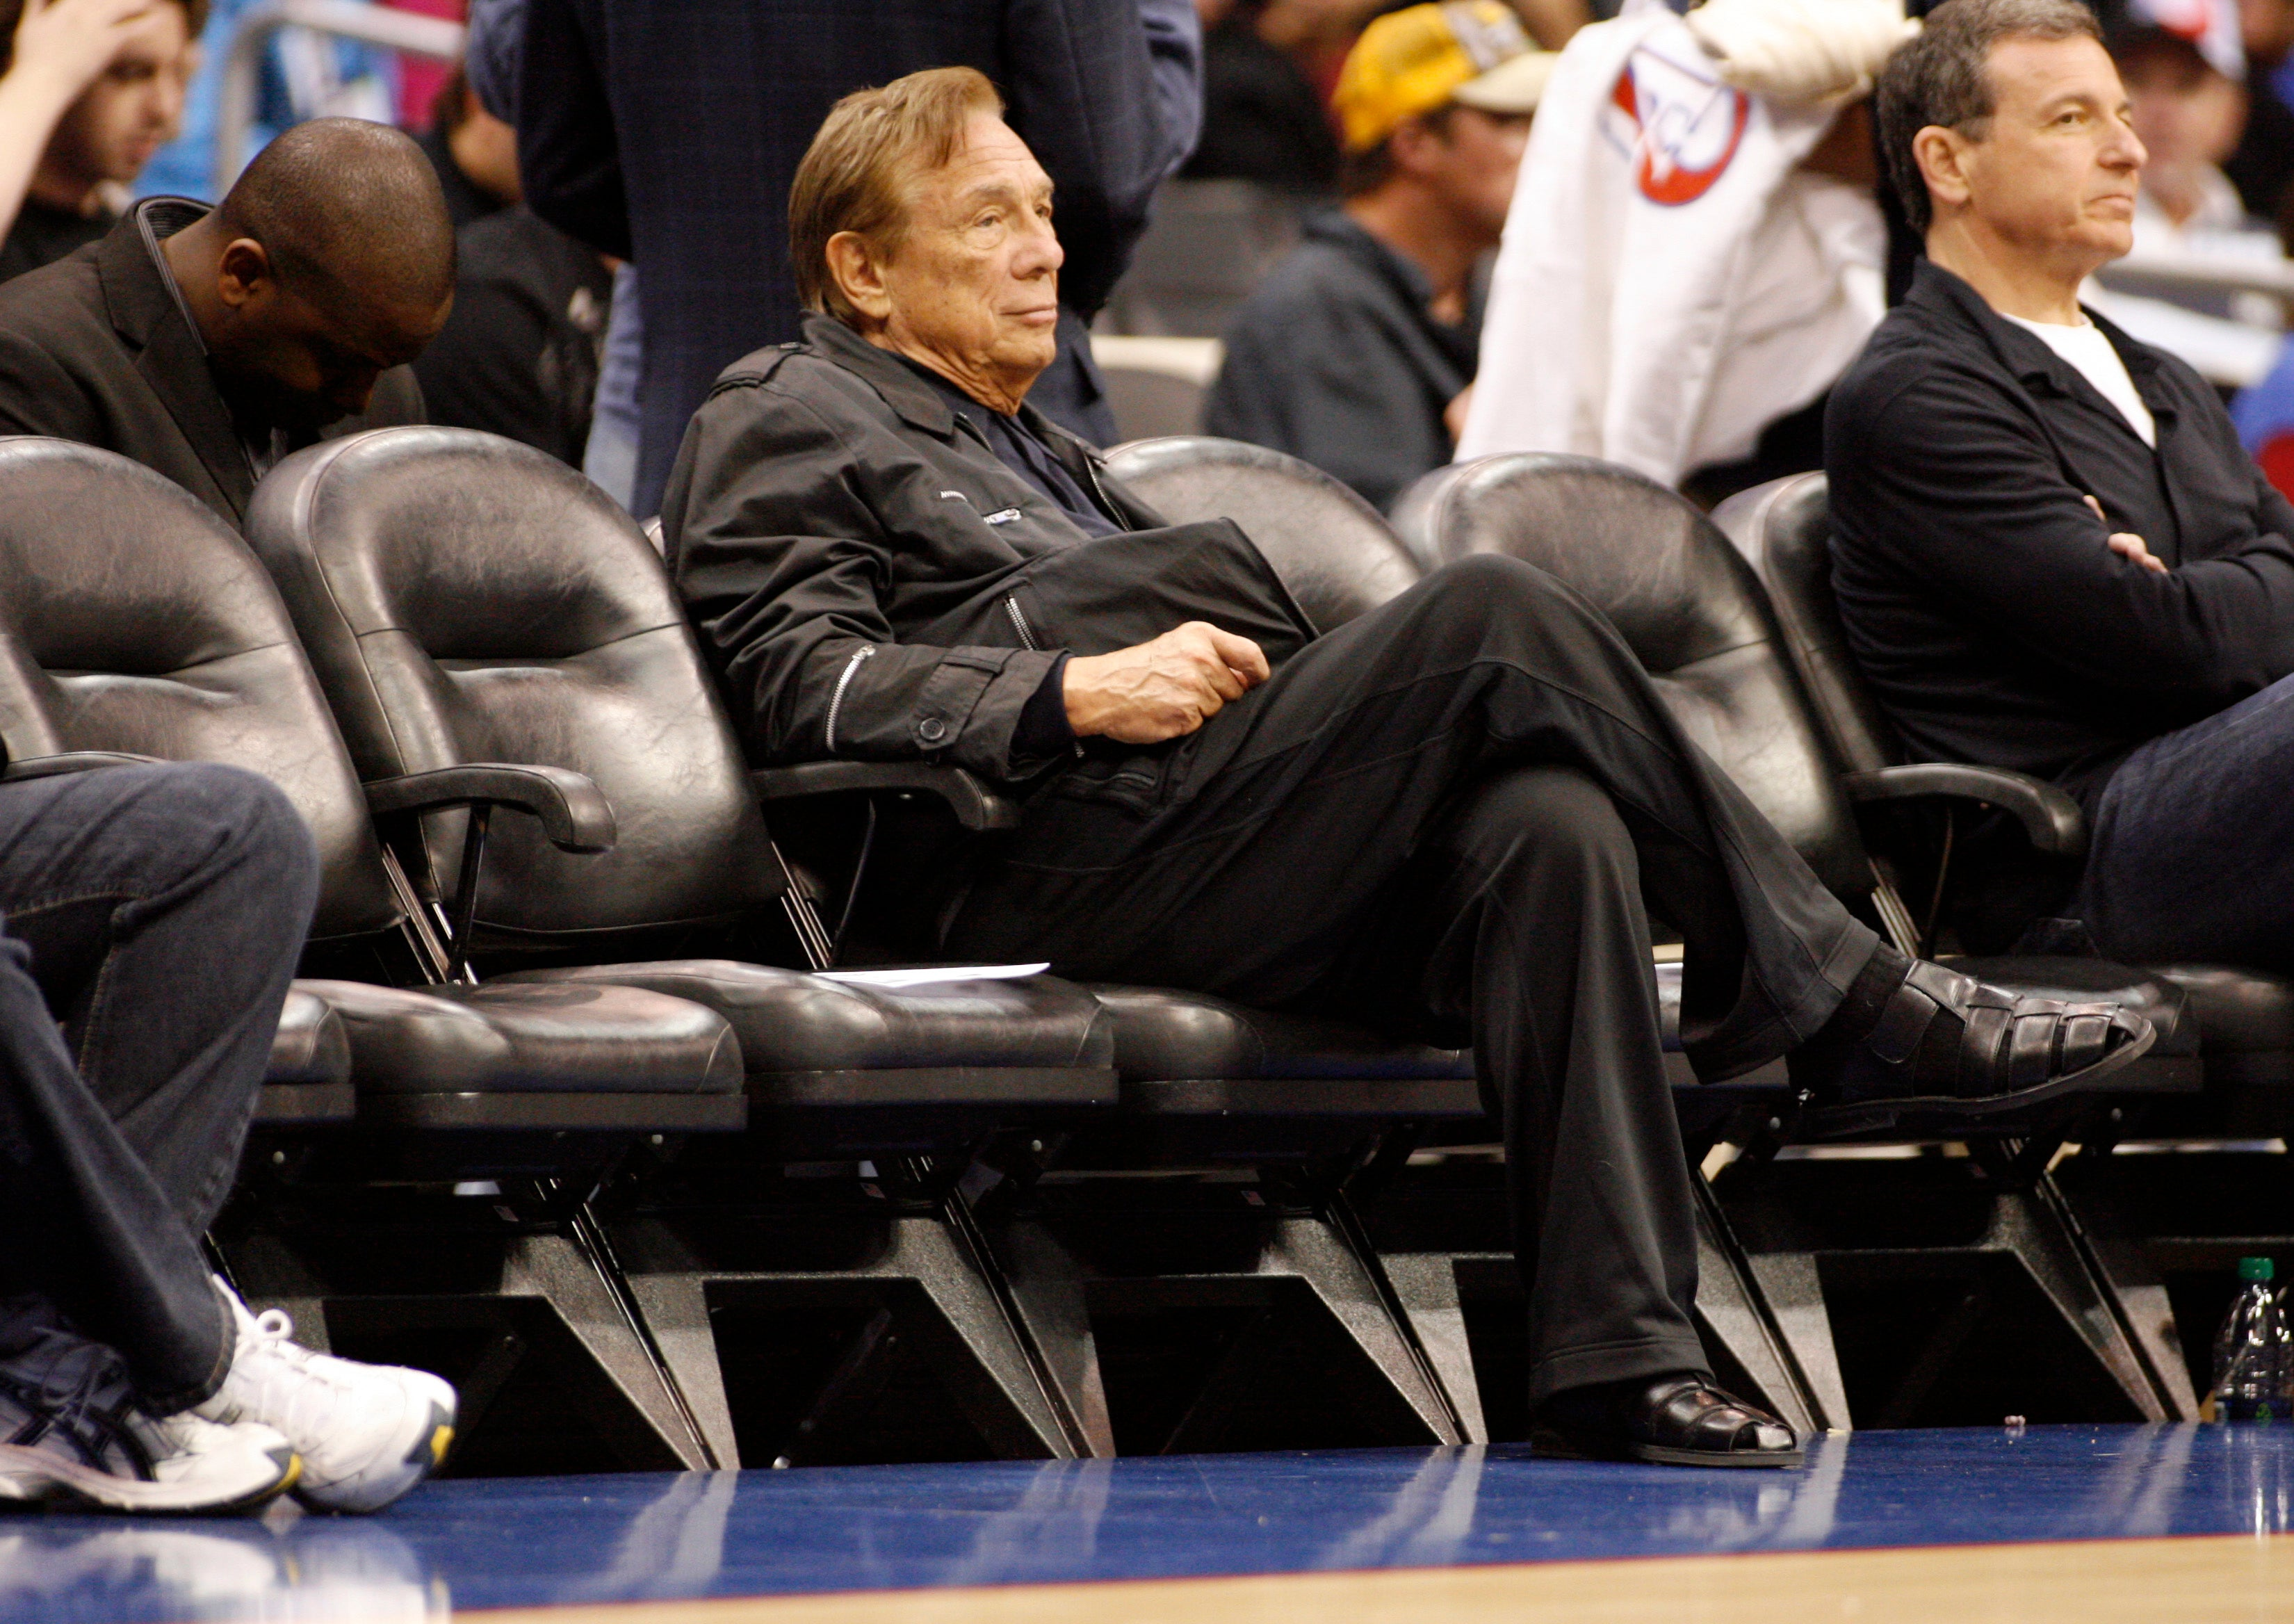 NBA Owners Are Lining Up To Vote Donald Sterling Out